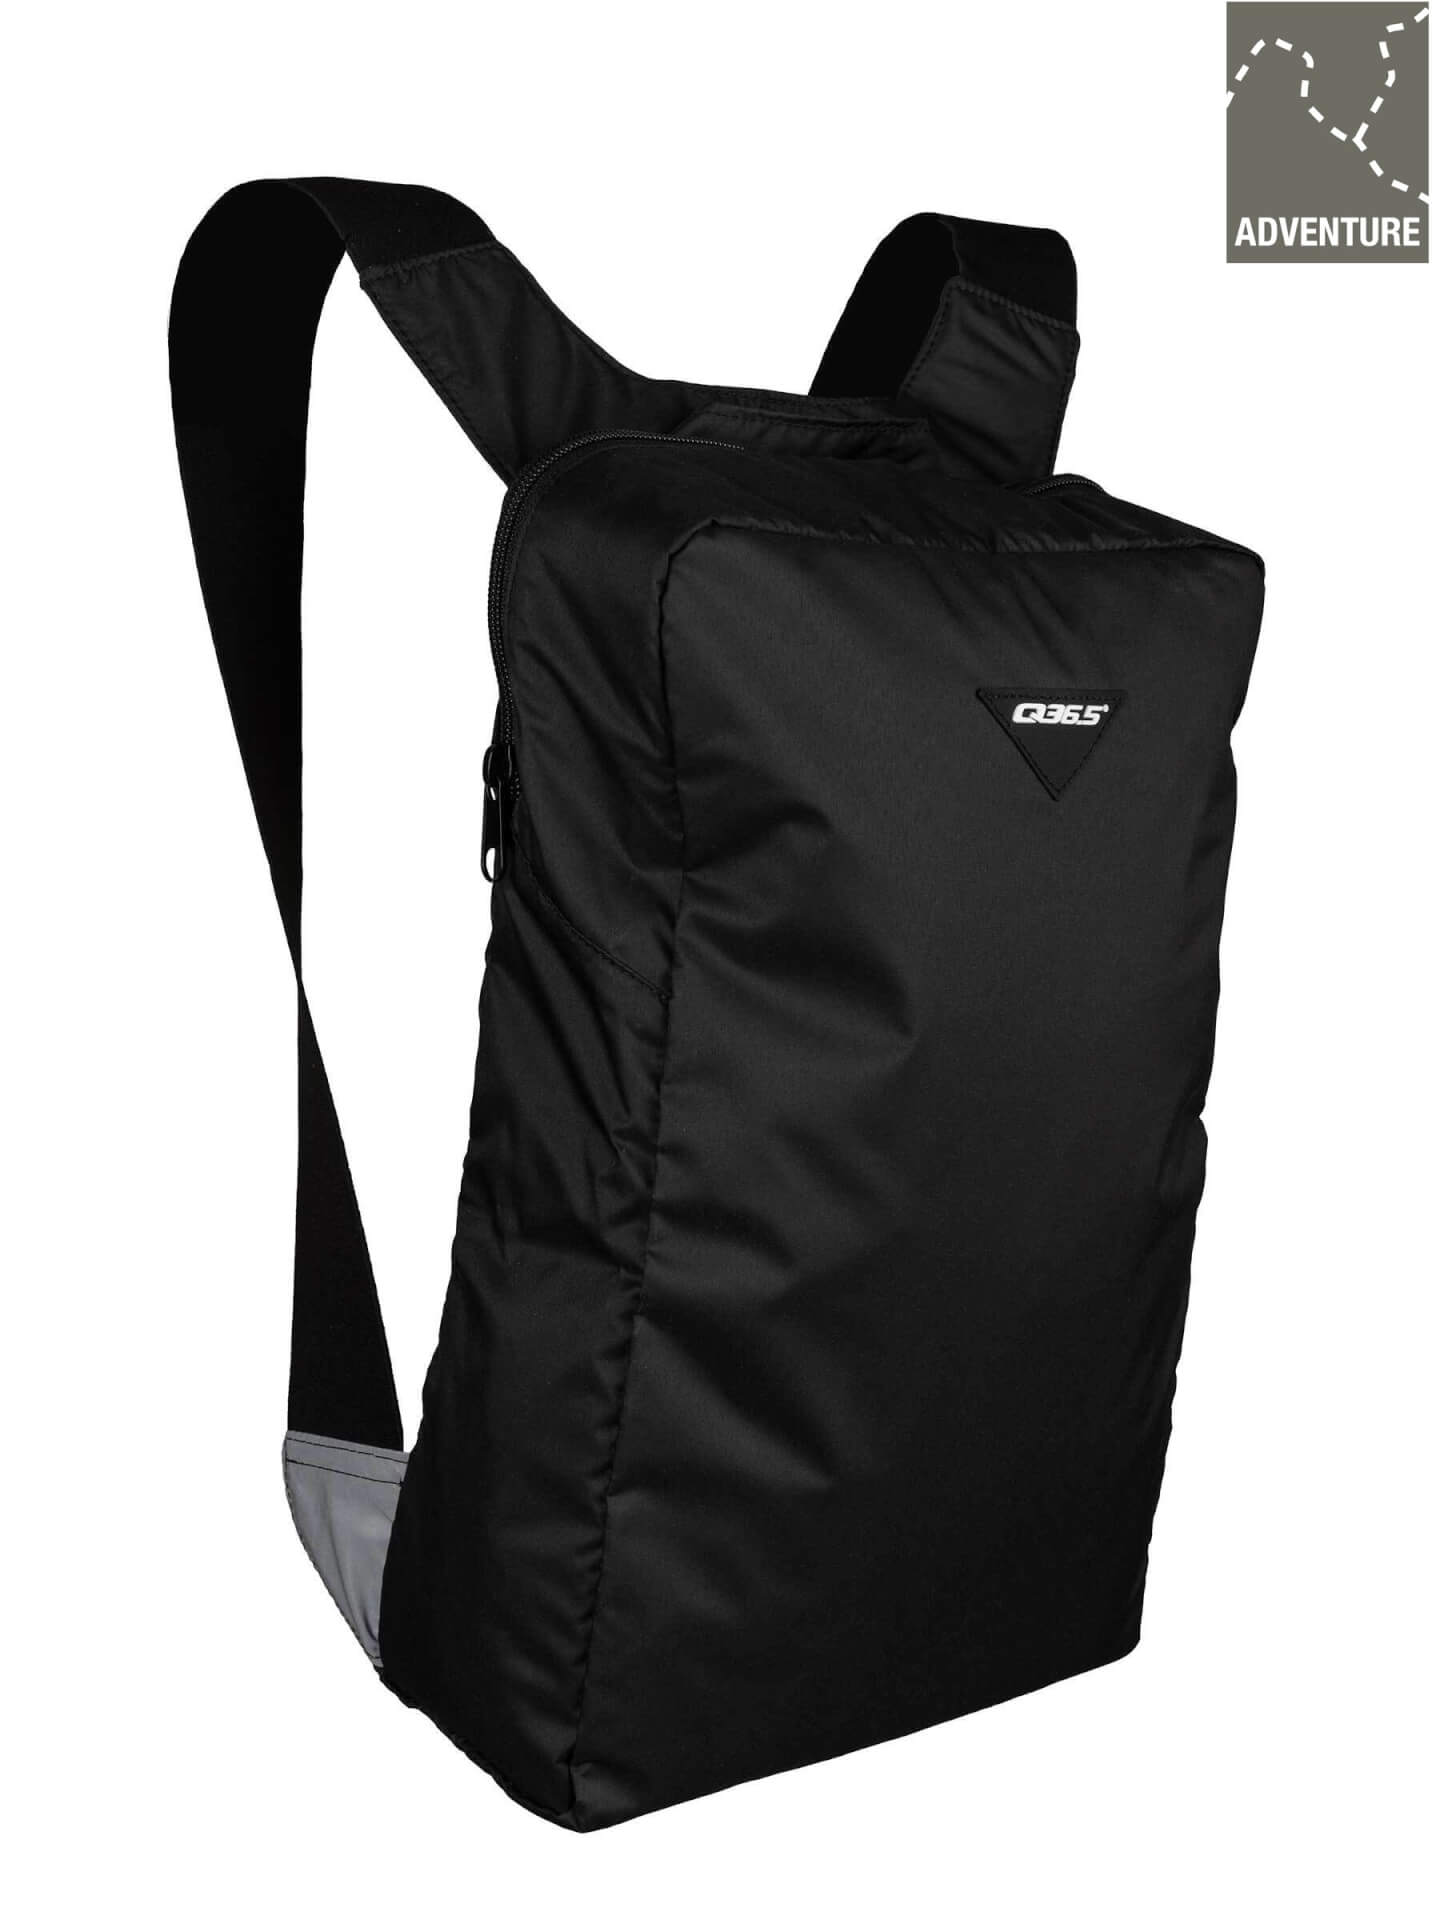 cycling backpack adventure black